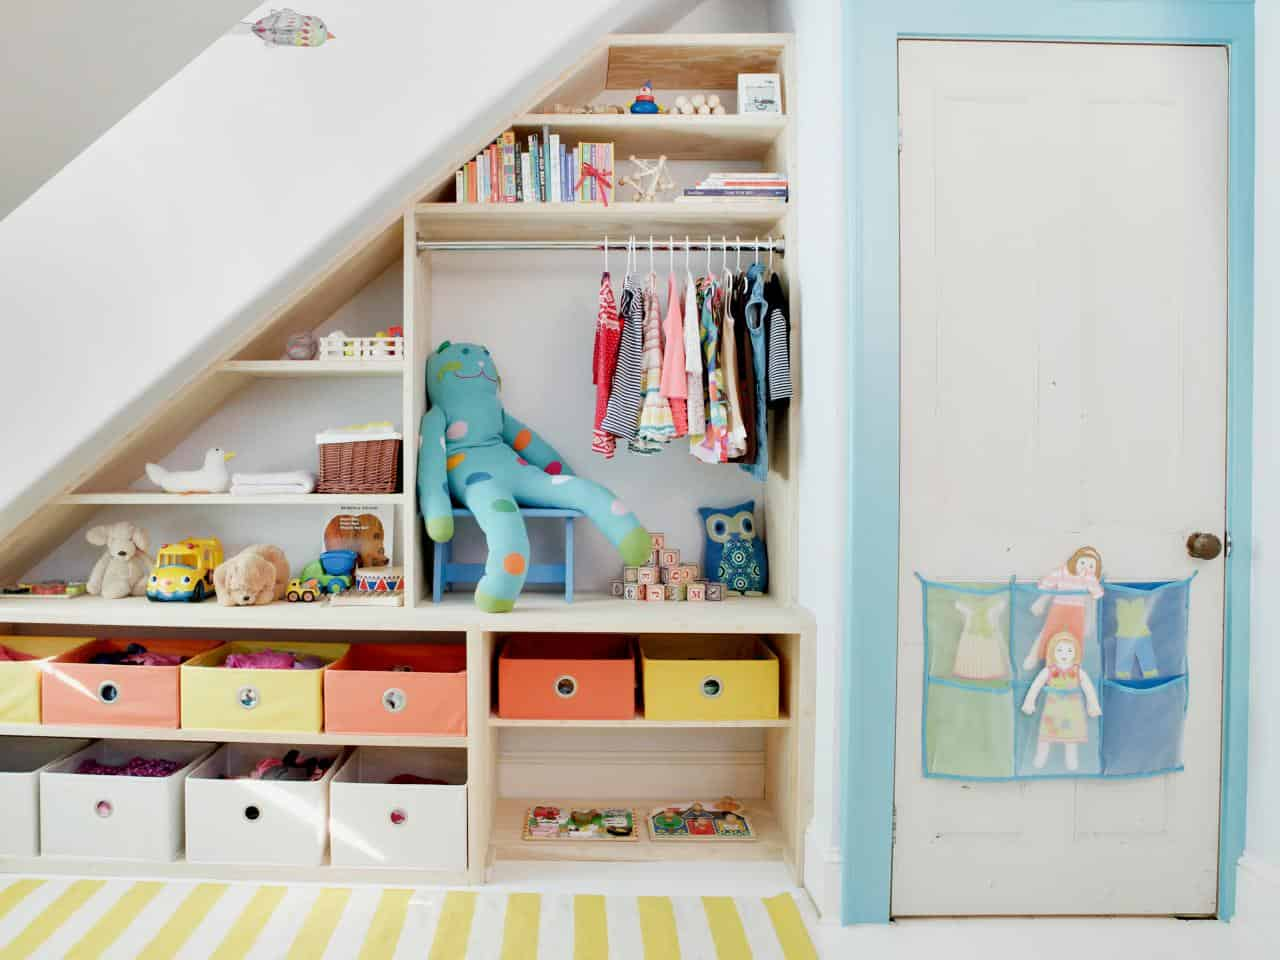 Stairs Shelving Diy Storage Ideas For Small Apartments